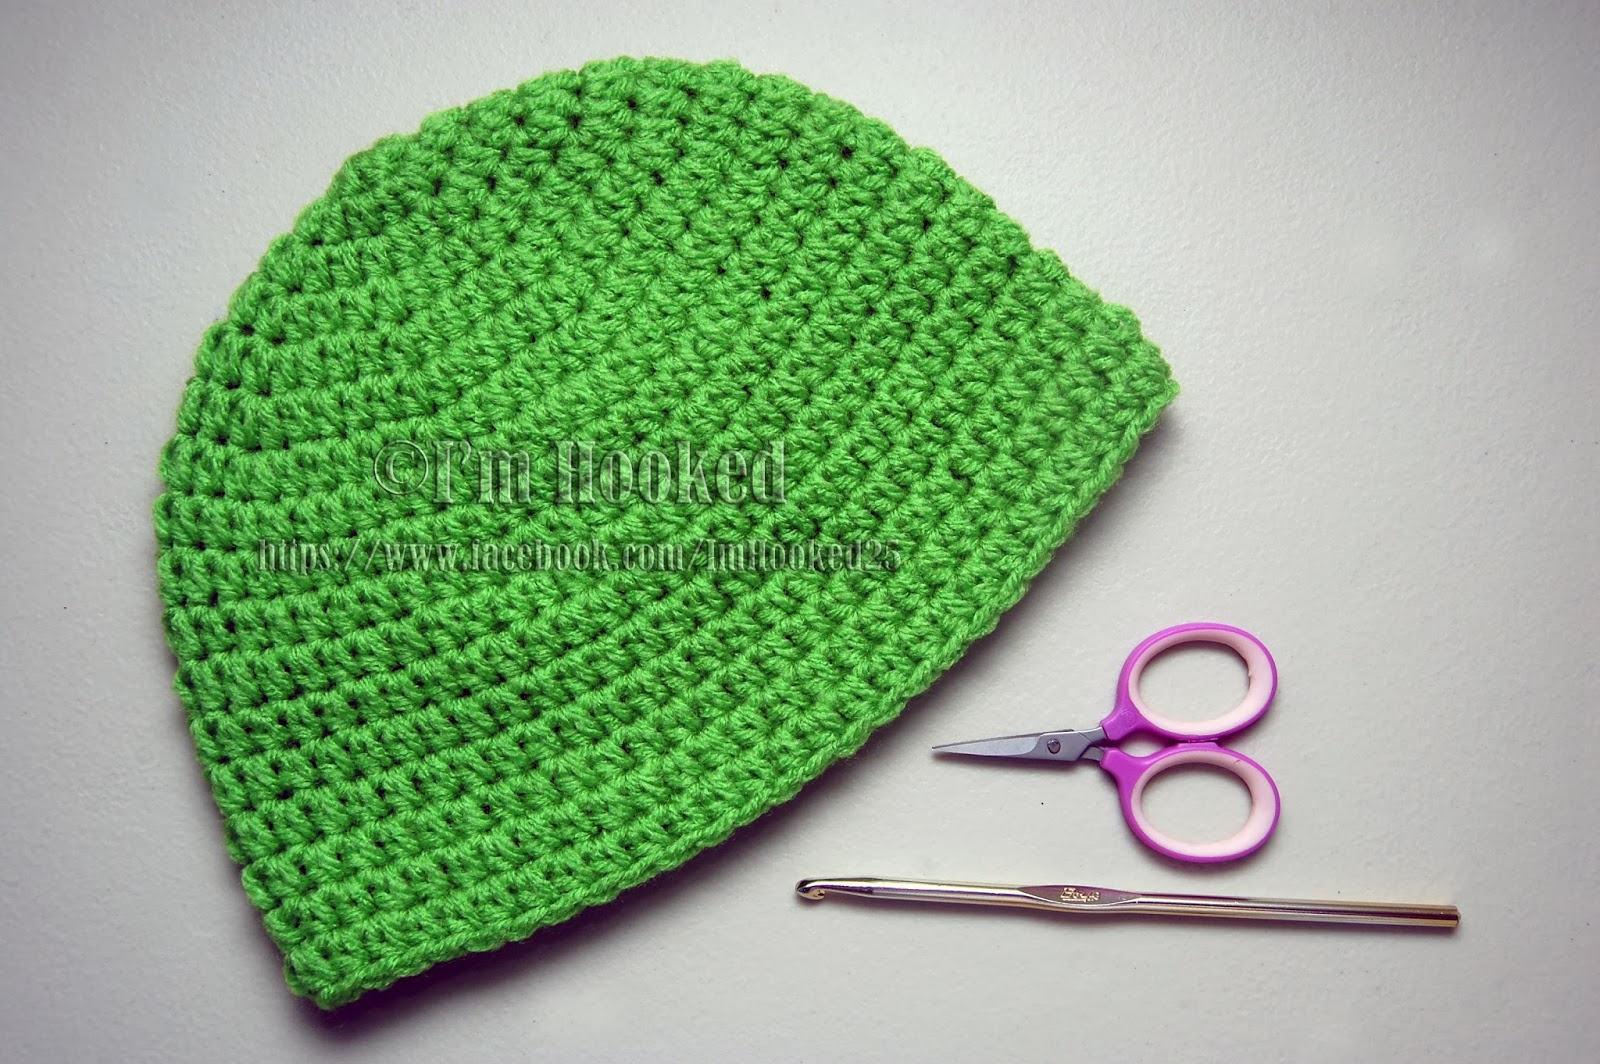 Free Crochet Pattern: Basic Beanie (Half Double Crochet)